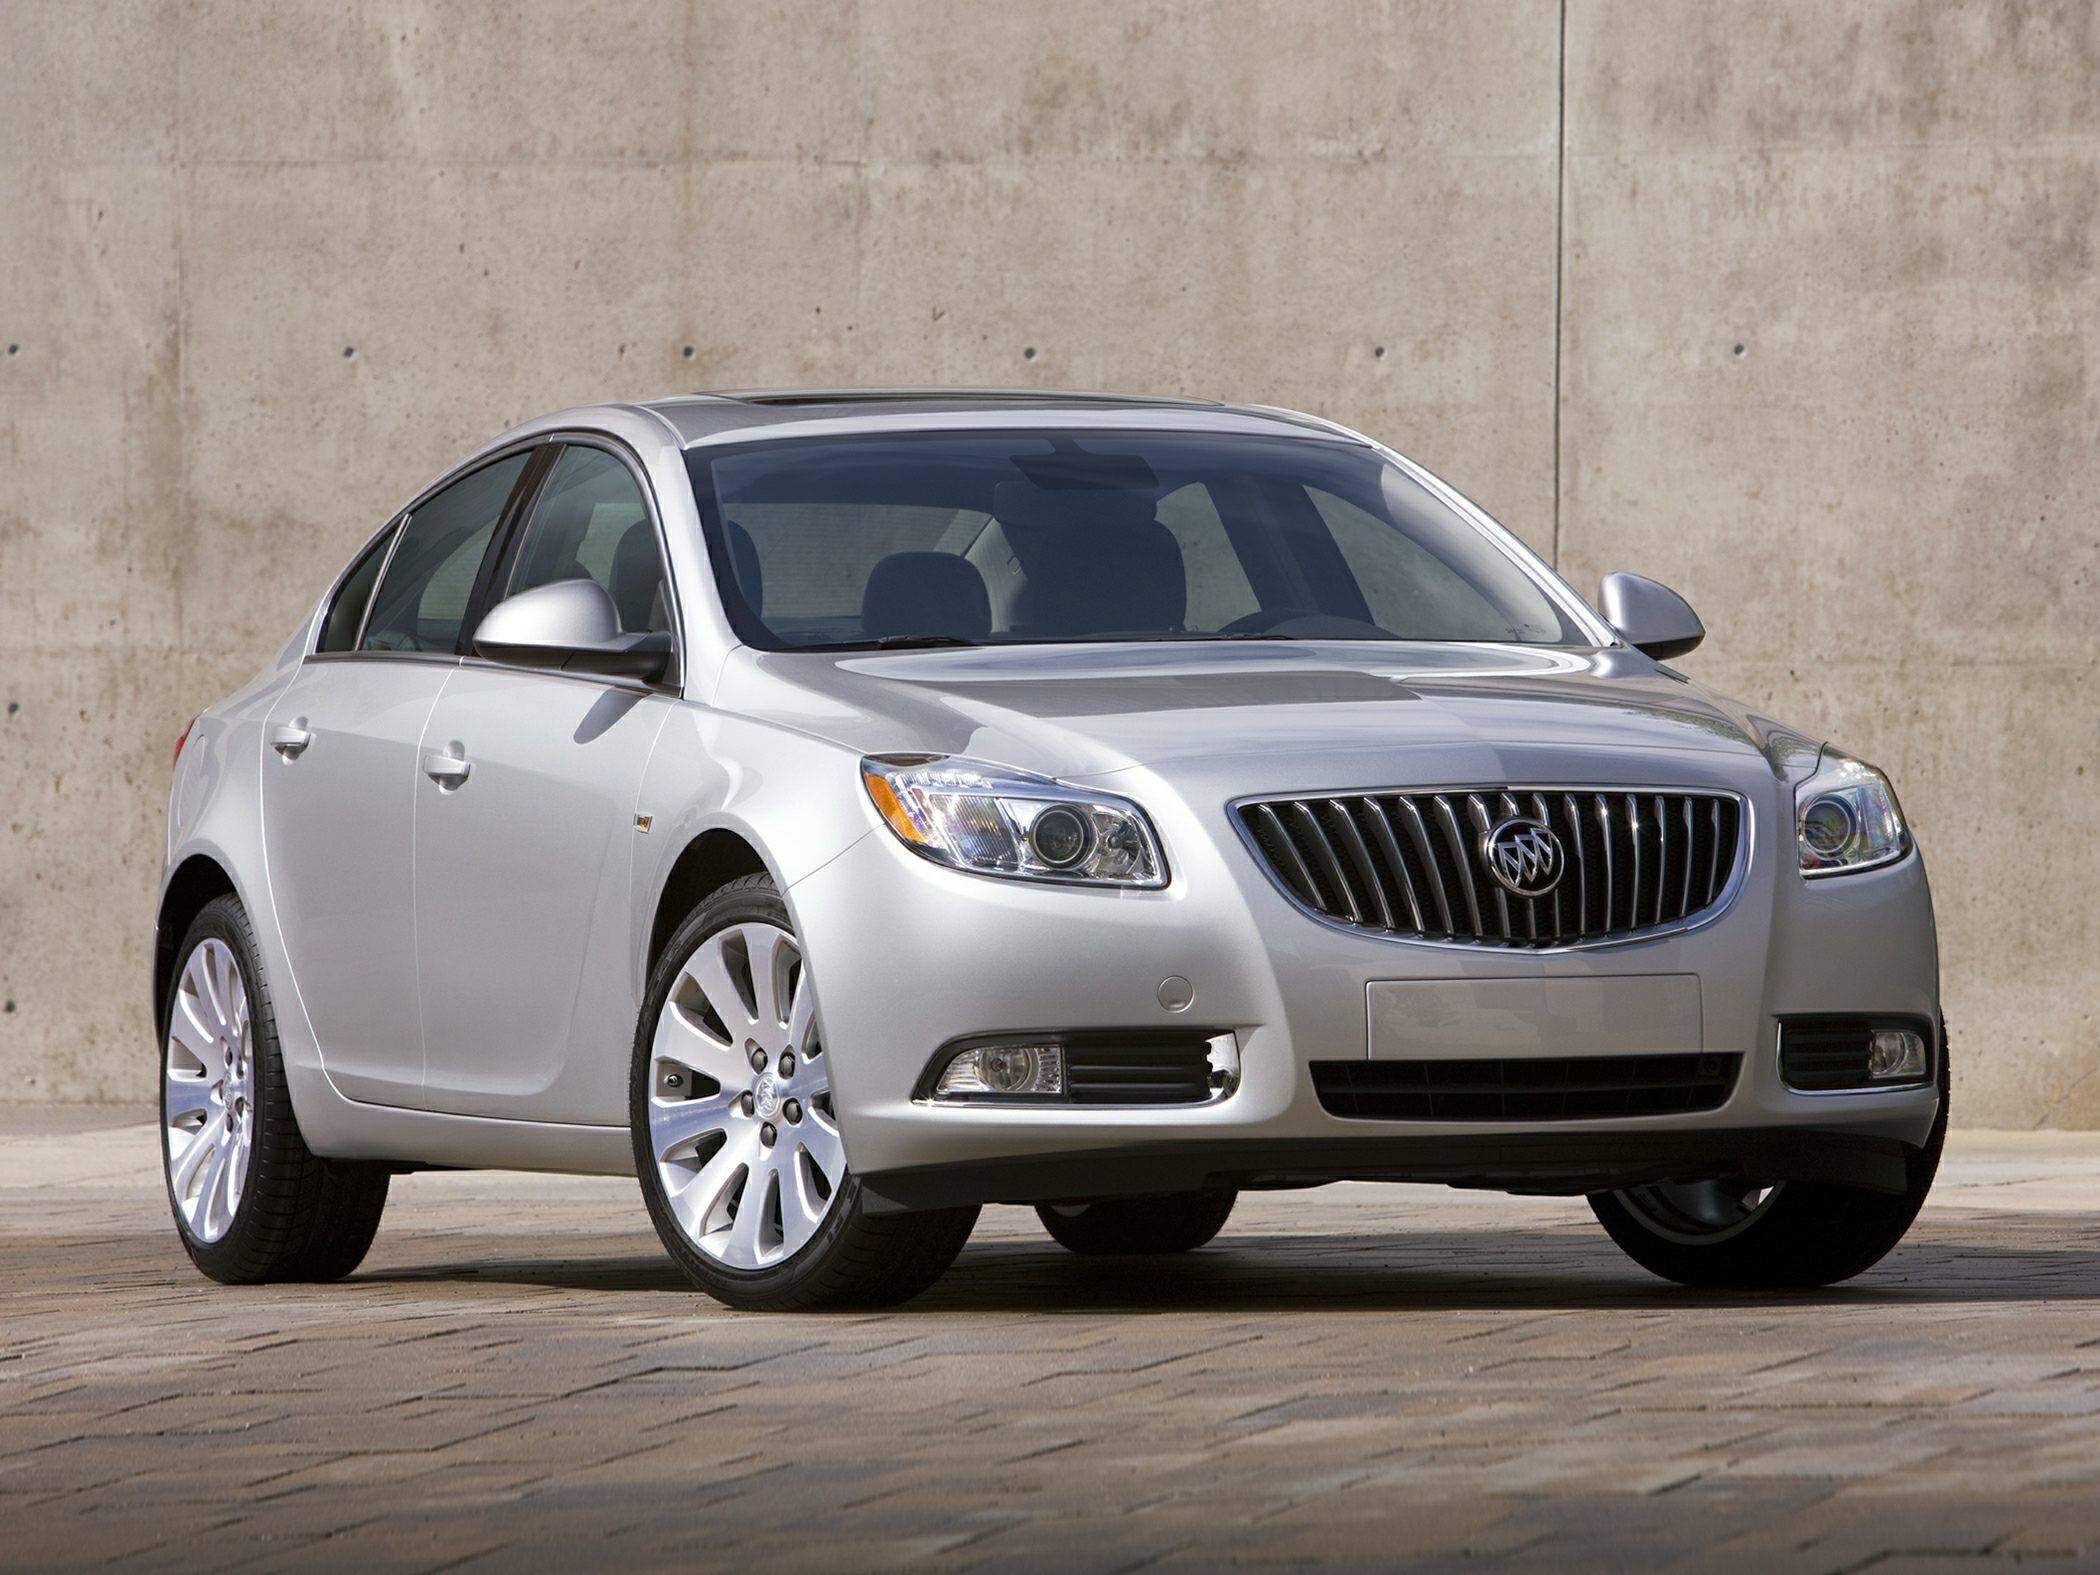 2013 Buick Regal White Power Tilt-Sliding Sunroof wSunshade Turbo Car buying made easy Here at